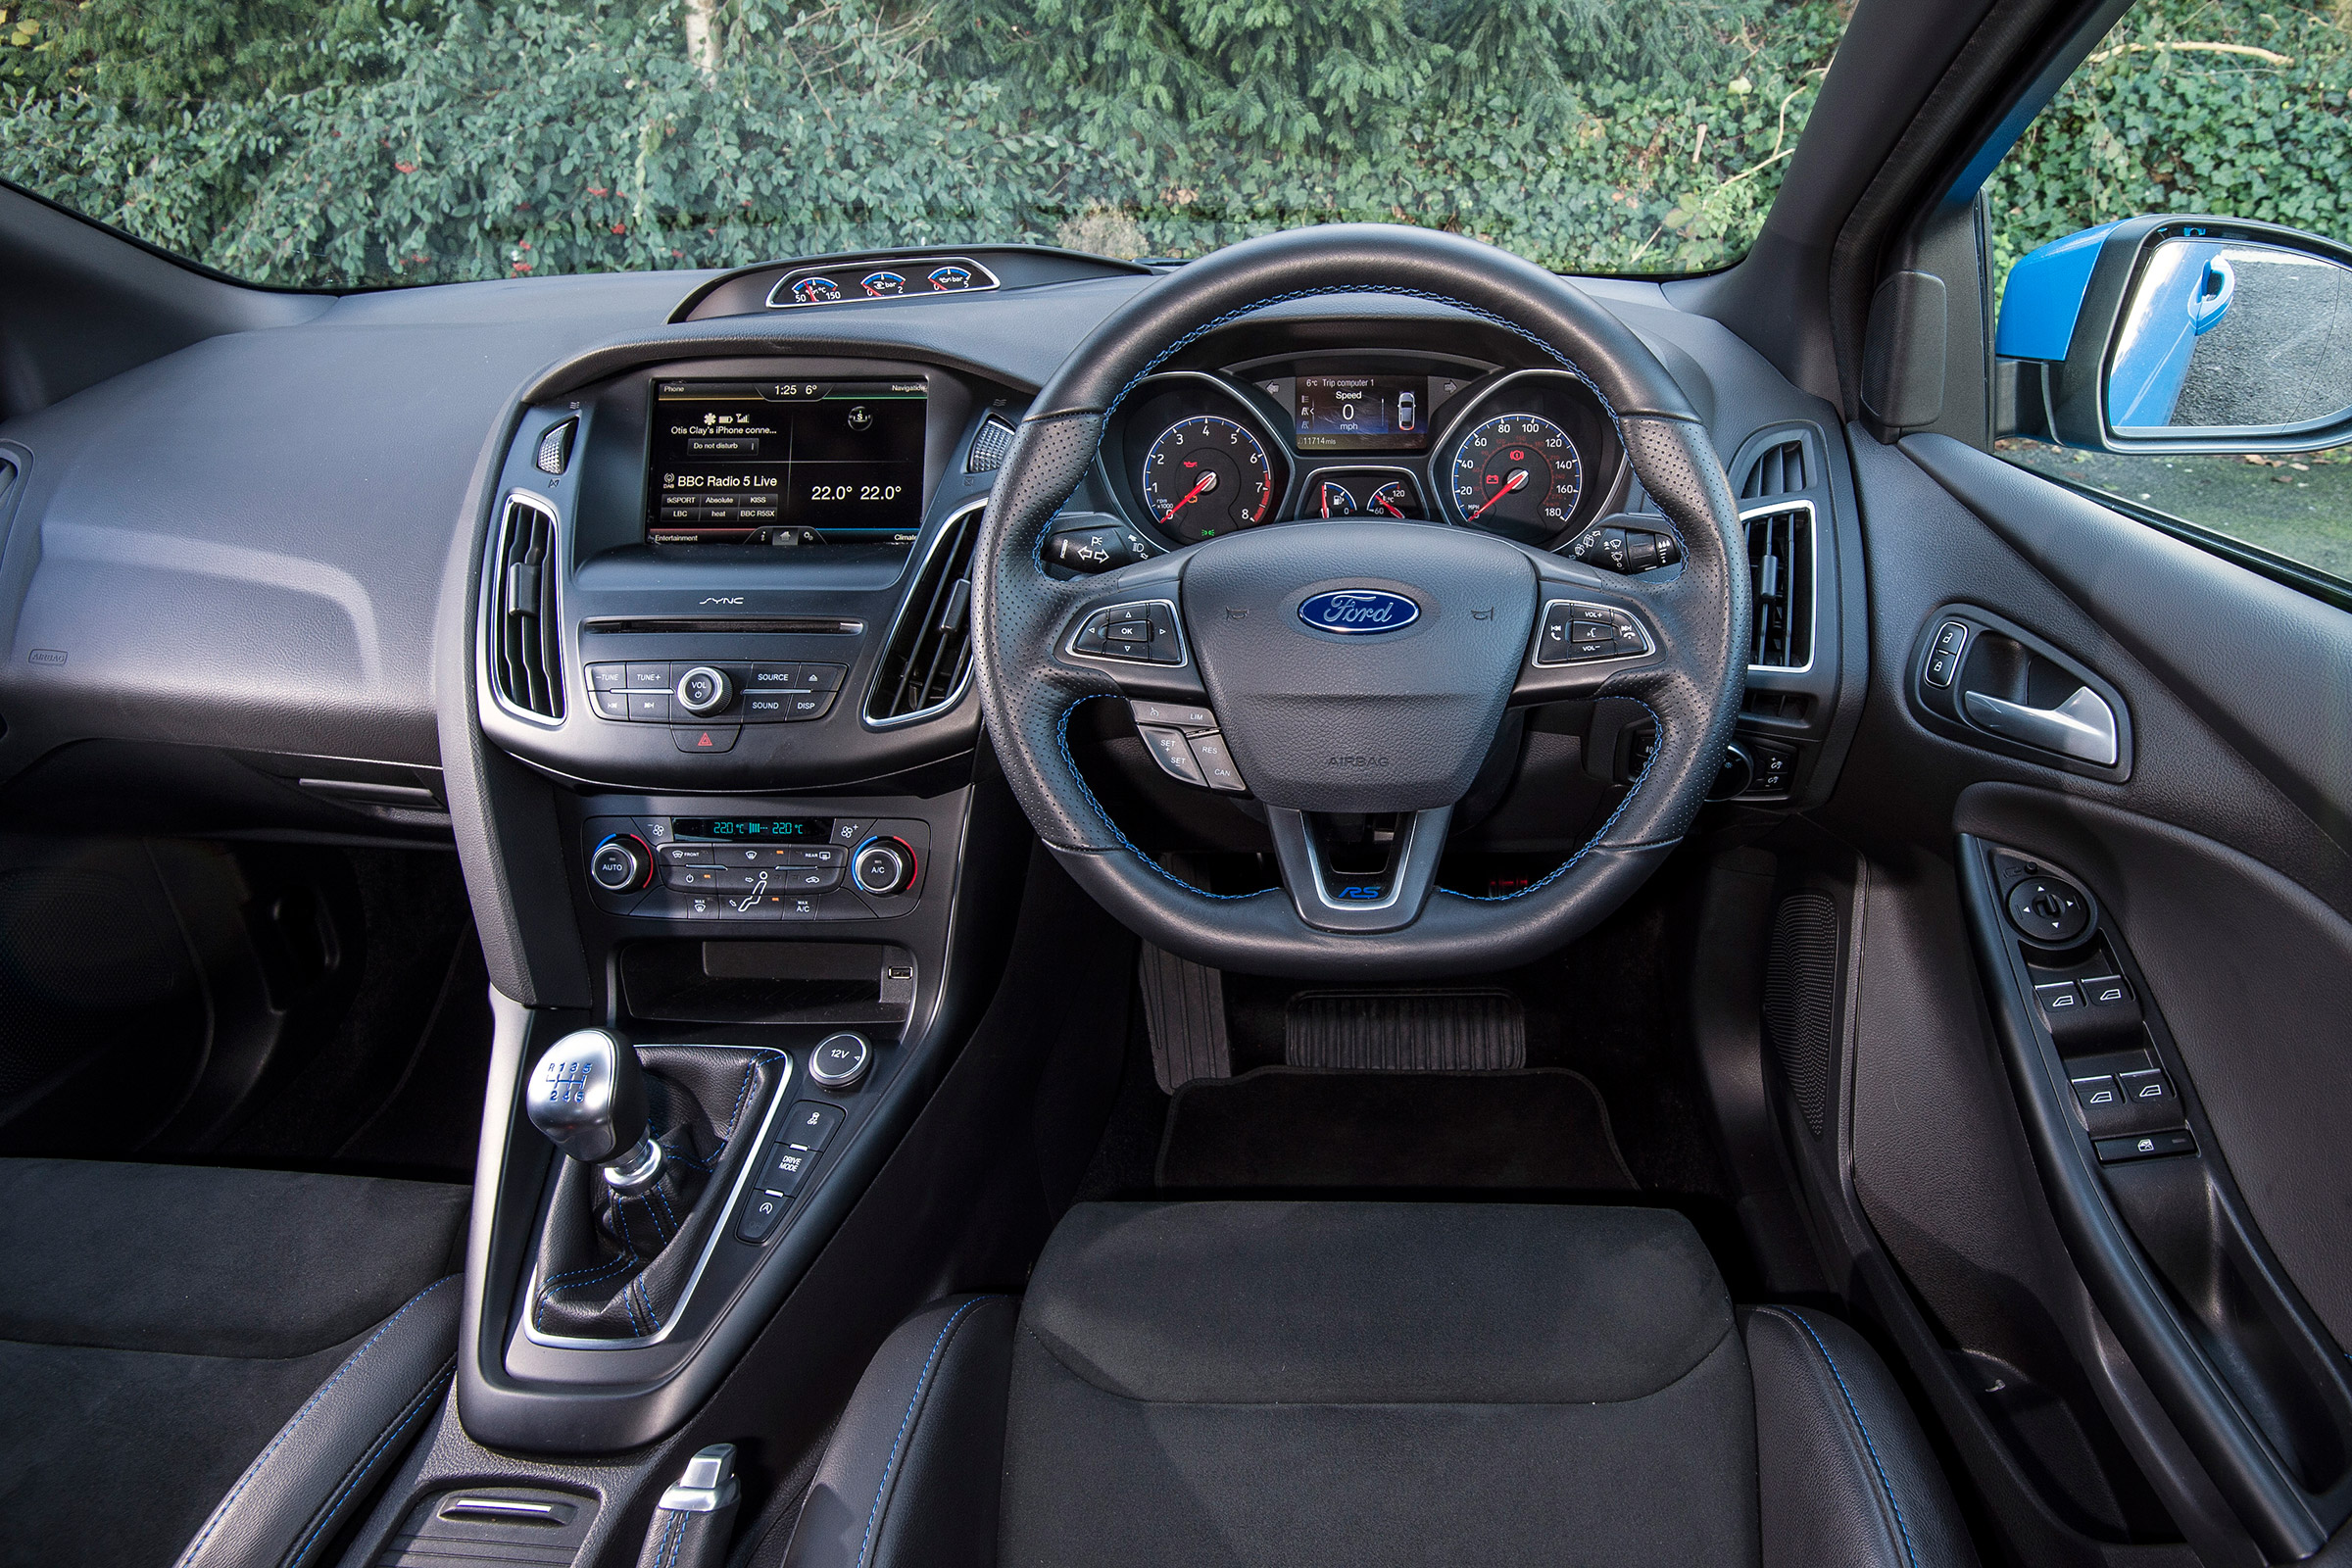 2017 Ford Focus RS Interior Driver Cockpit Steering And Dash (View 9 of 23)